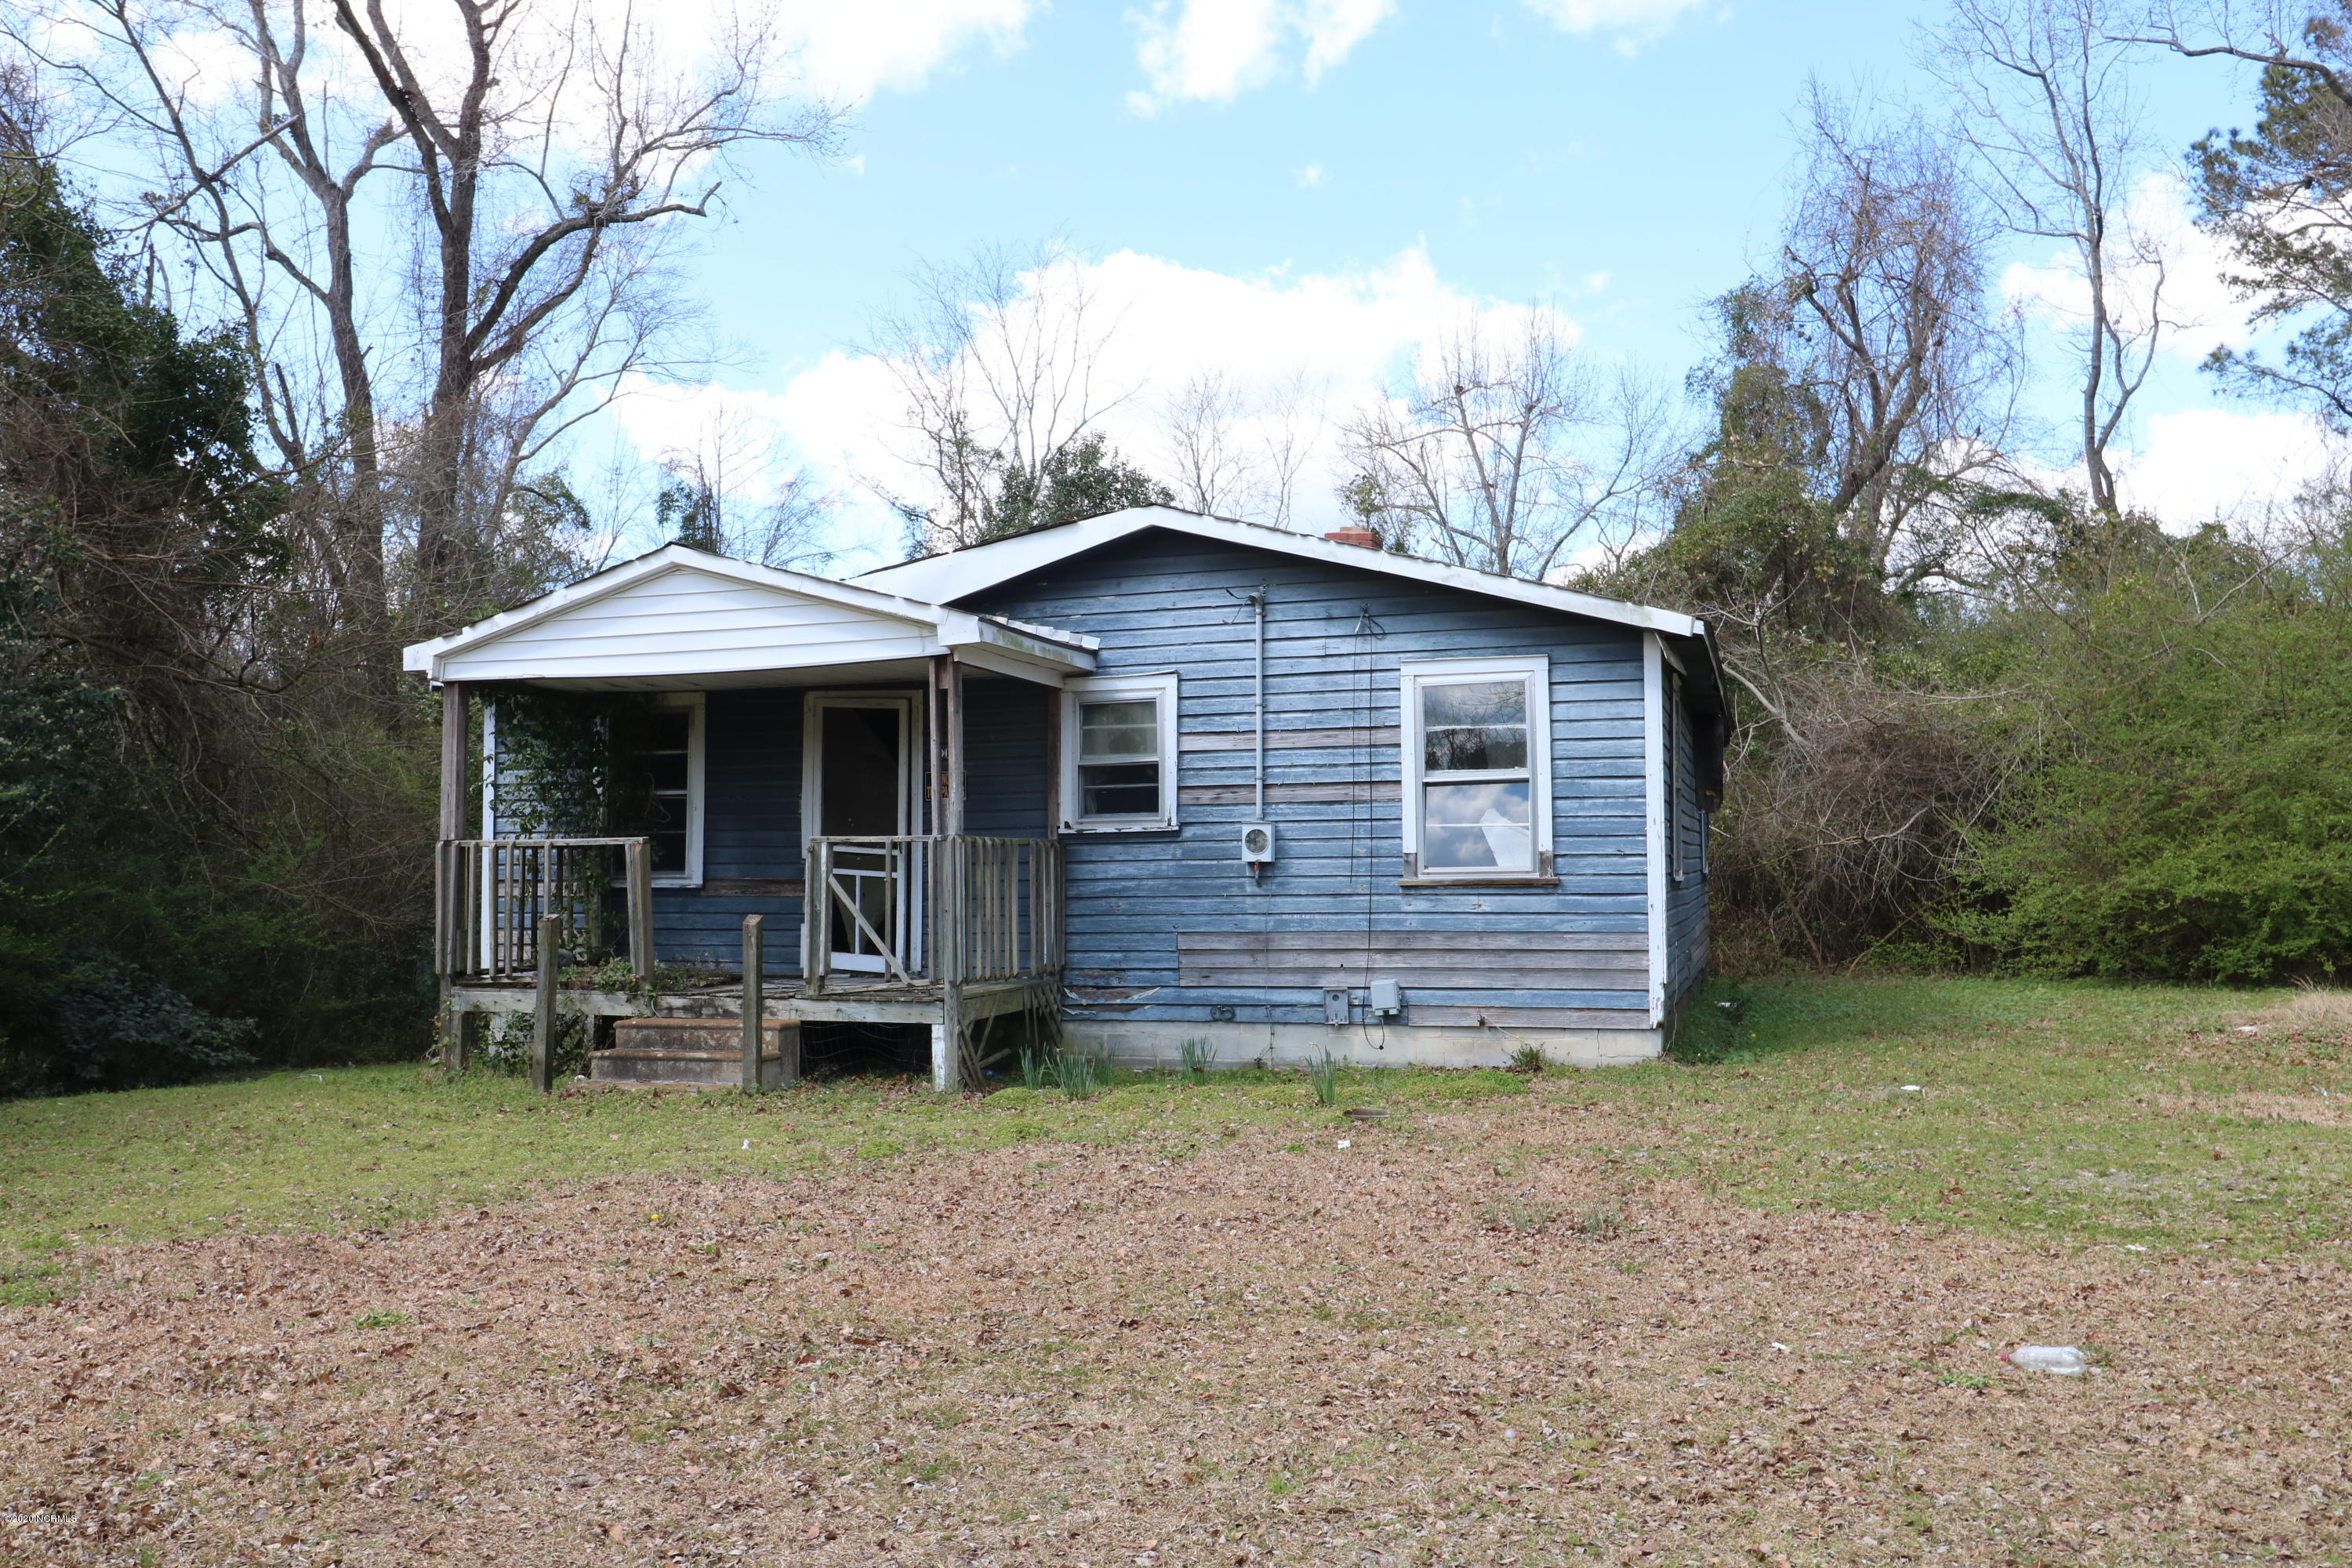 1008 Martin Luther King Jr Drive, Elizabethtown, North Carolina 28337, 2 Bedrooms Bedrooms, 4 Rooms Rooms,1 BathroomBathrooms,Single family residence,For sale,Martin Luther King Jr,100208930